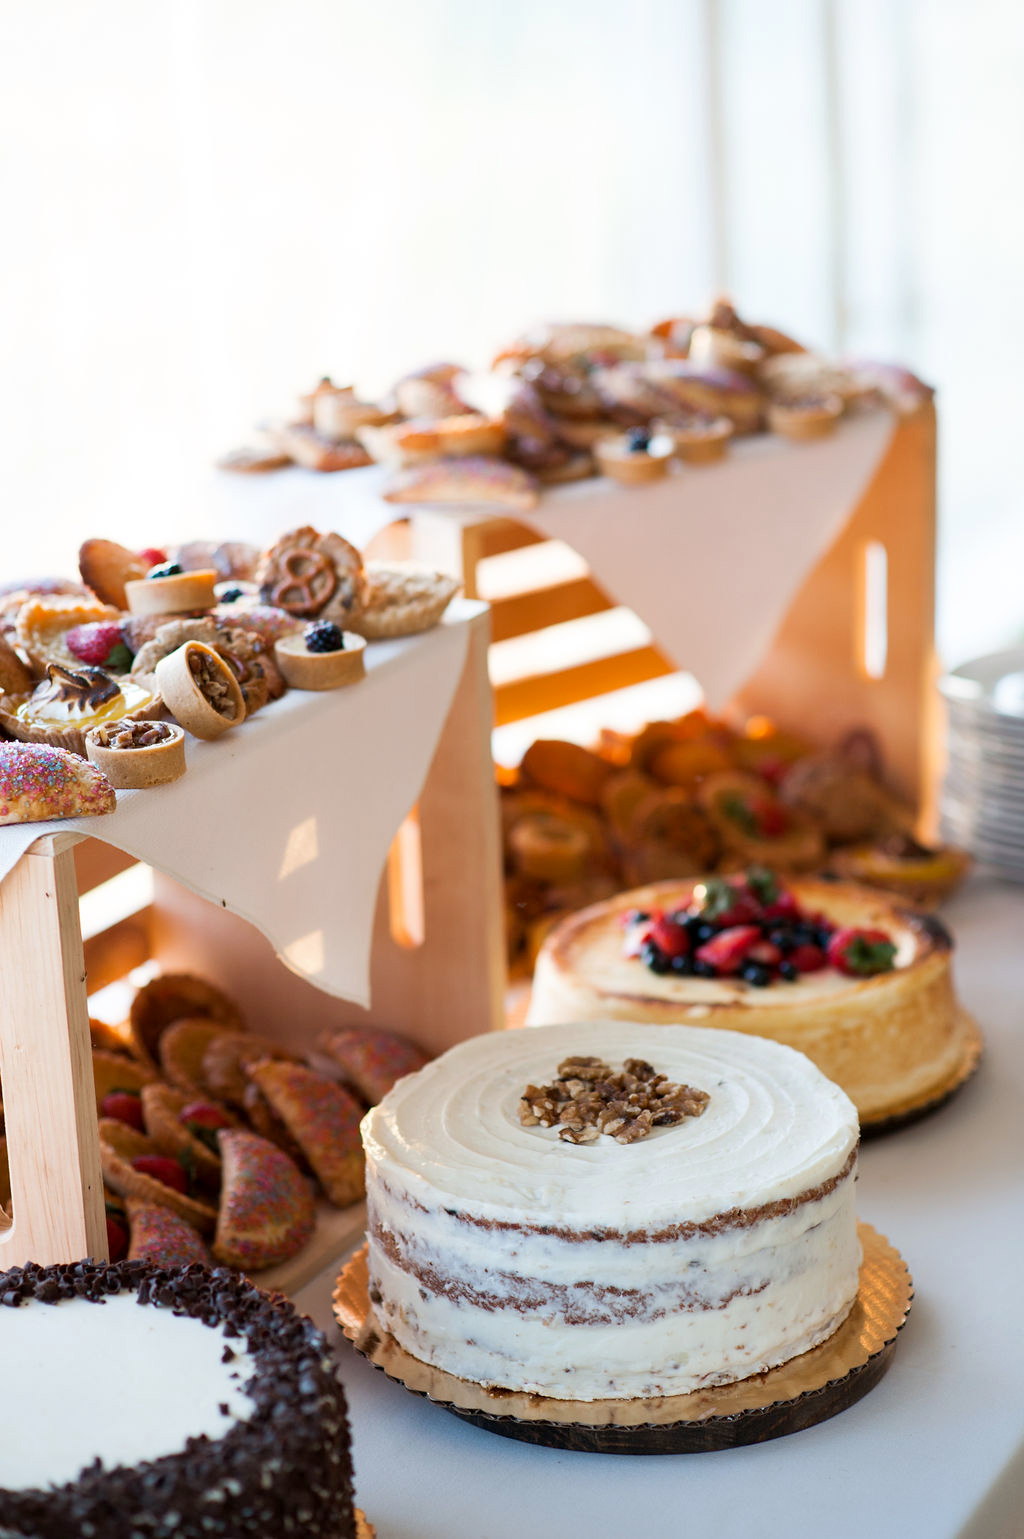 various cakes, pies, and pastry desserts